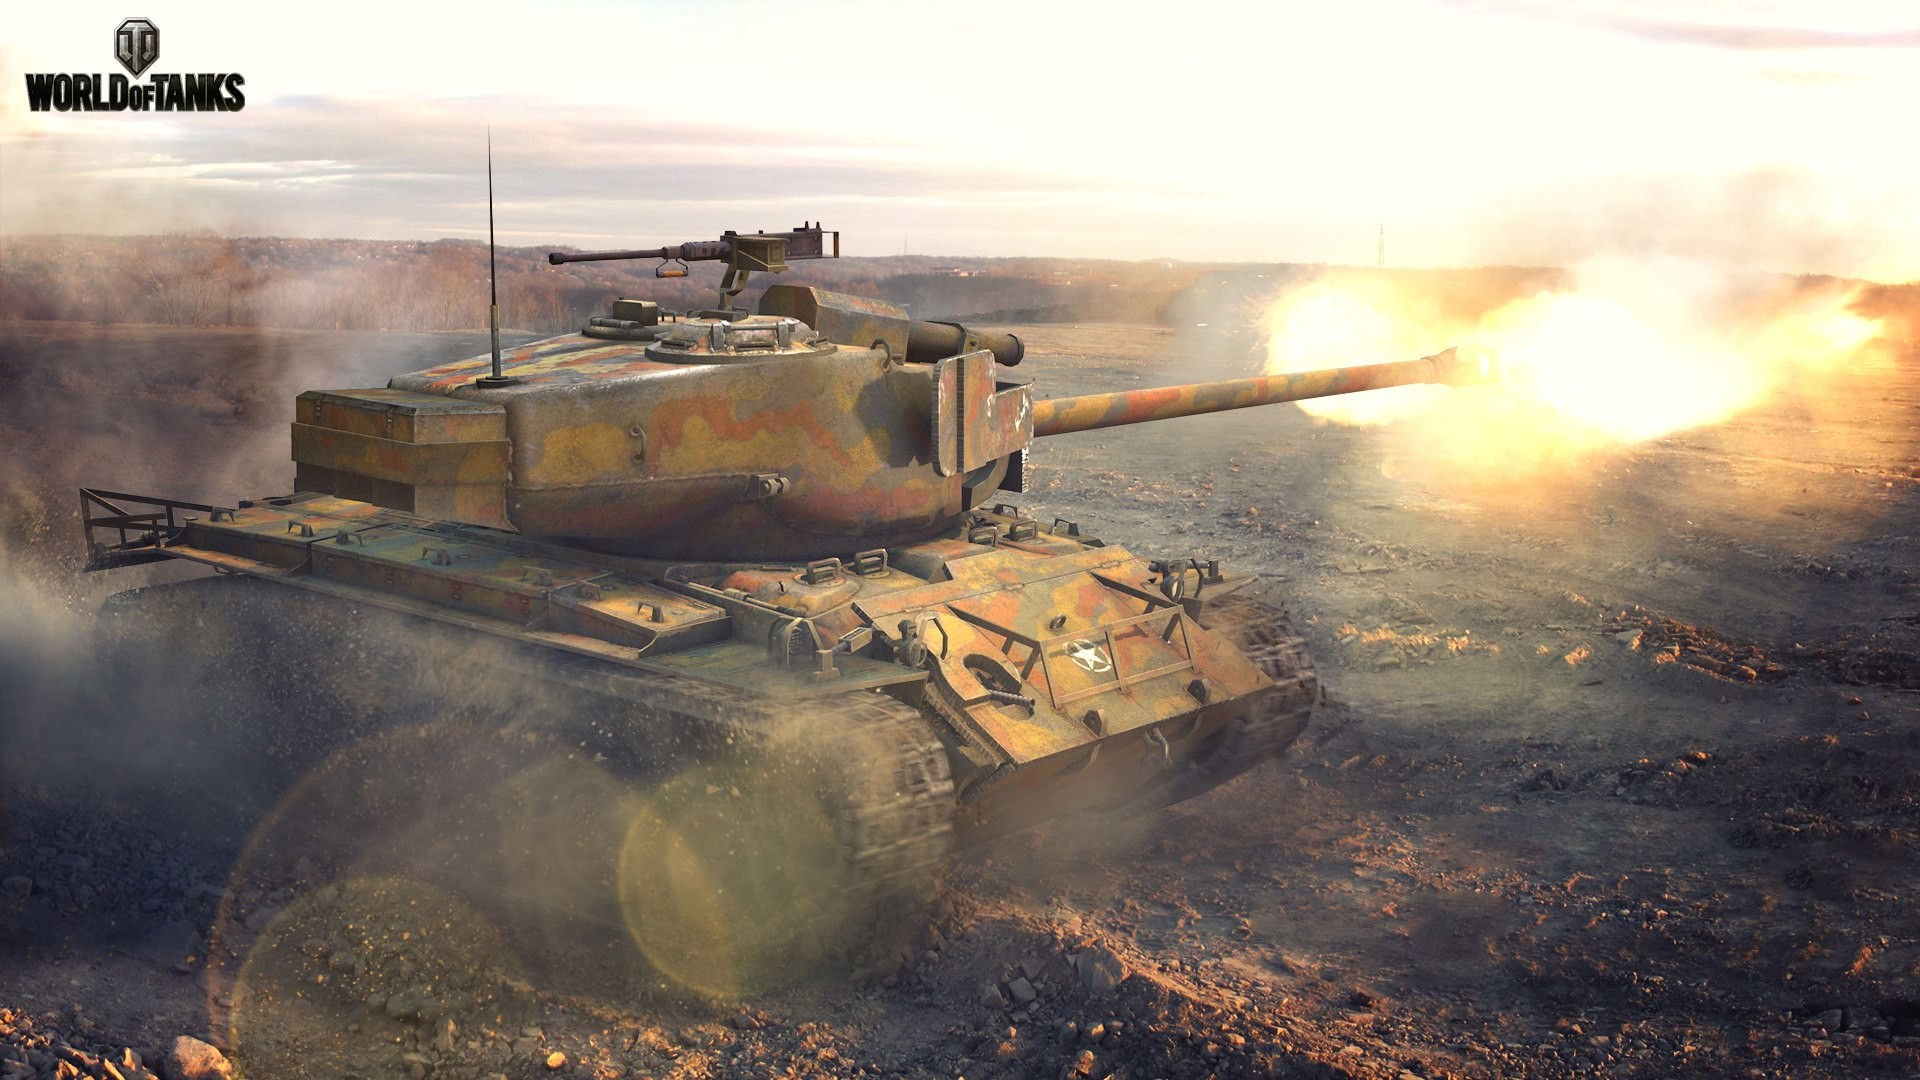 1920x1080 World of Tanks T26E4 Super Pershing Firing Games military wallpaper |   | 98295 | WallpaperUP